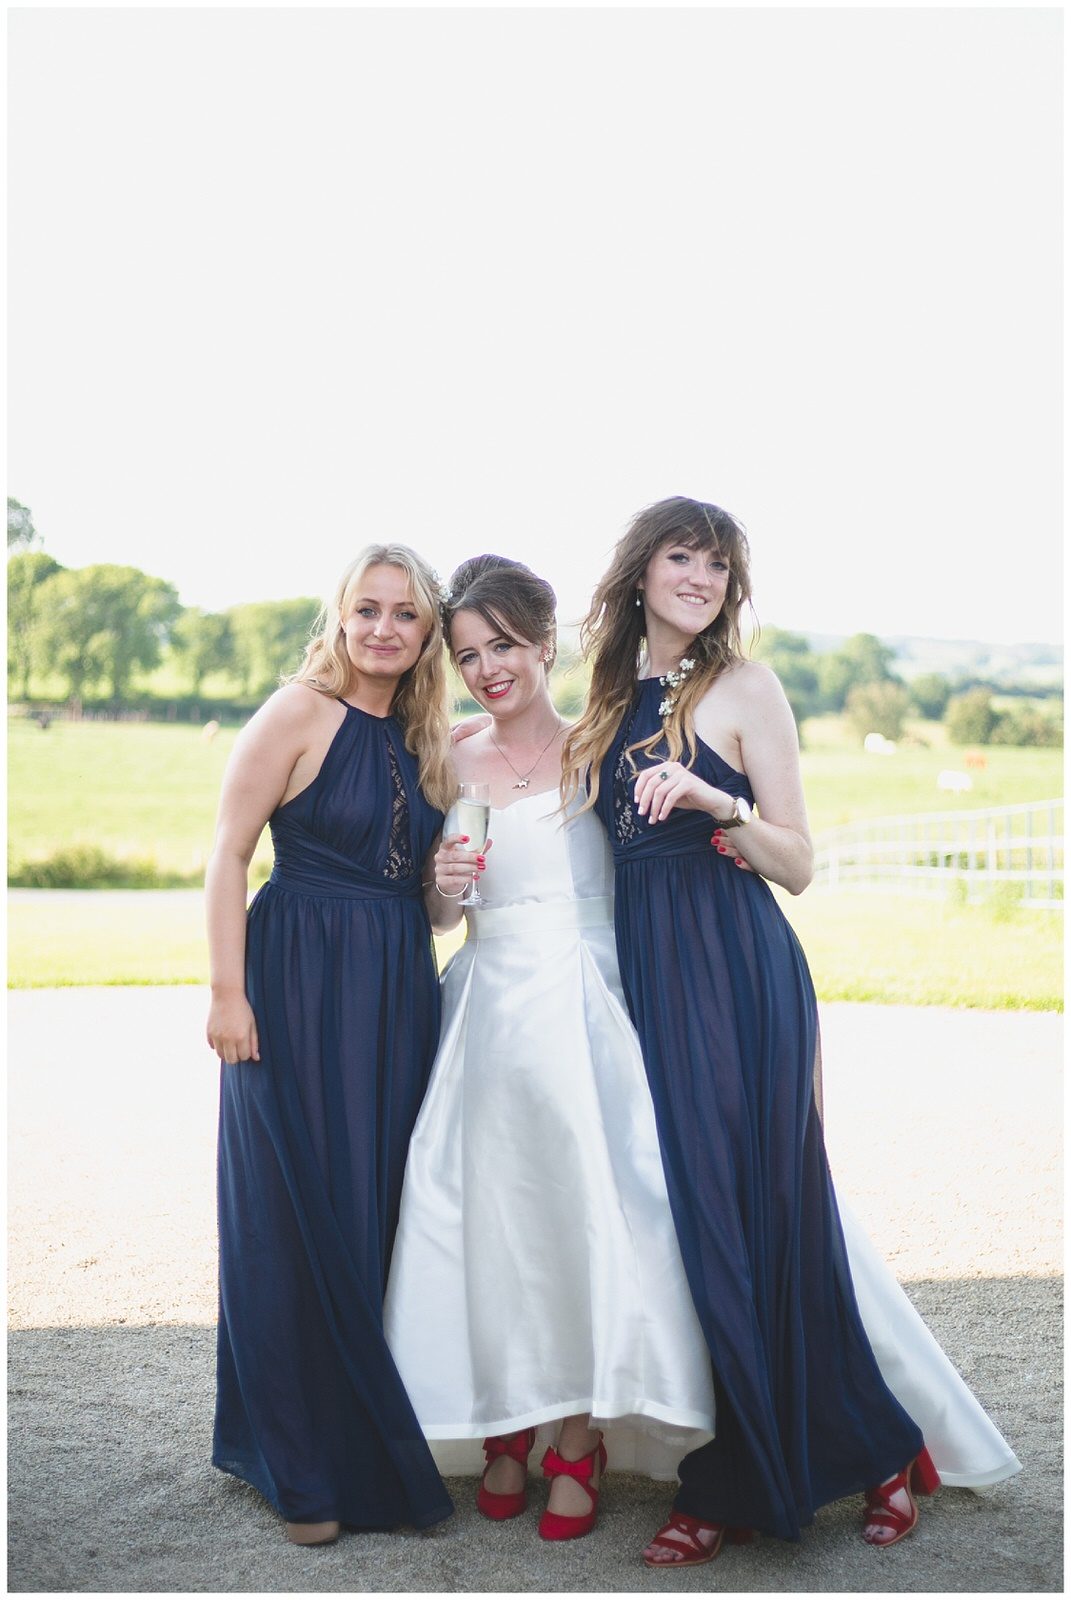 Wild Things Wed Photography - Portrait of stunning bride and bridesmaids